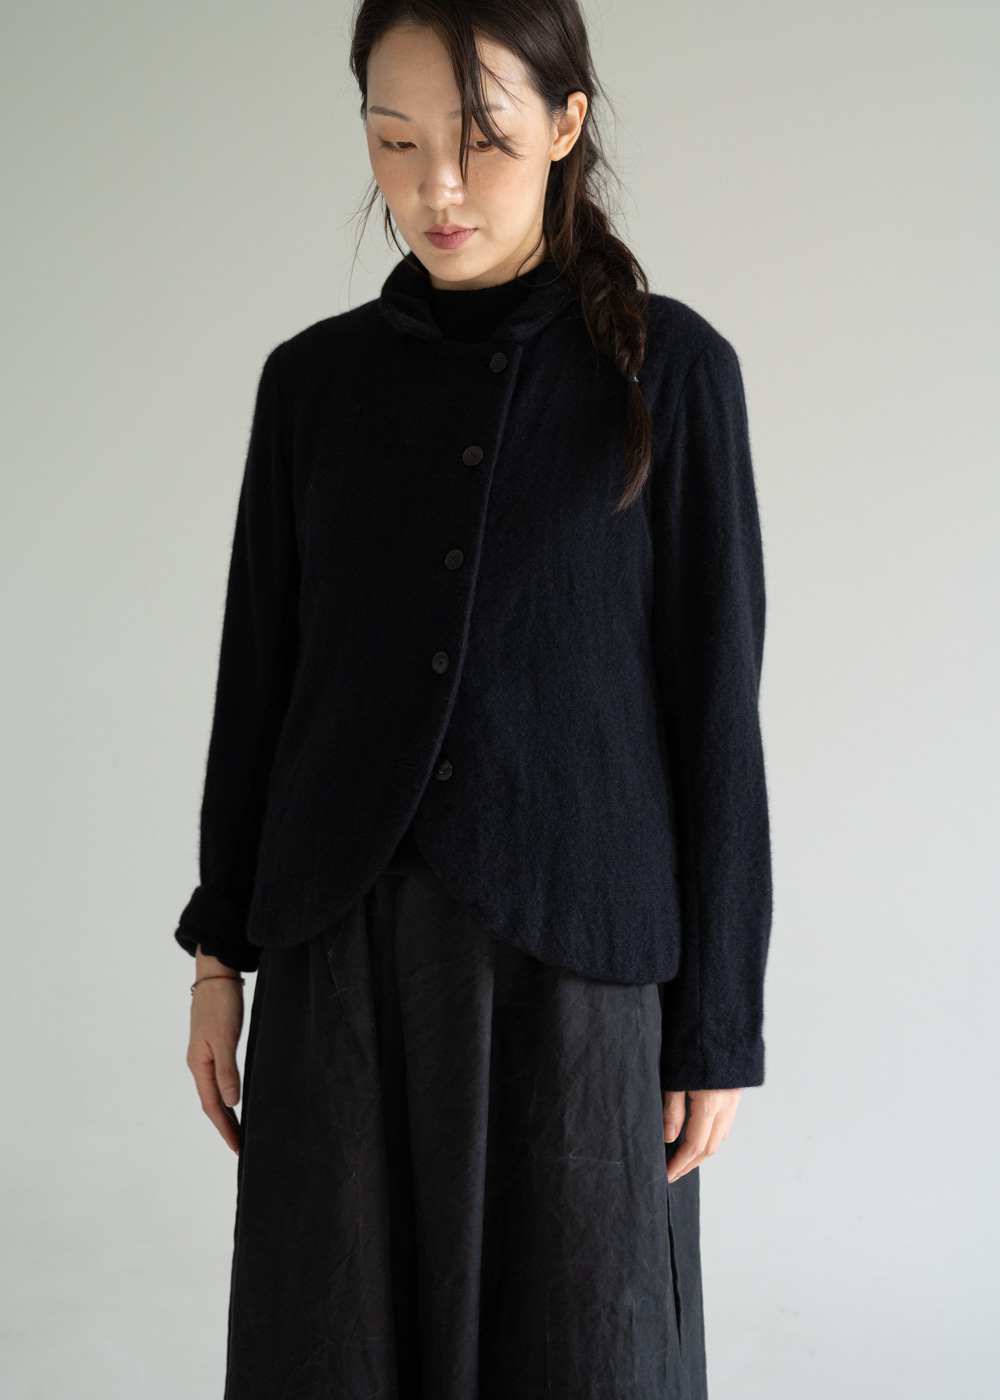 ALLY CASHMERE JACKET